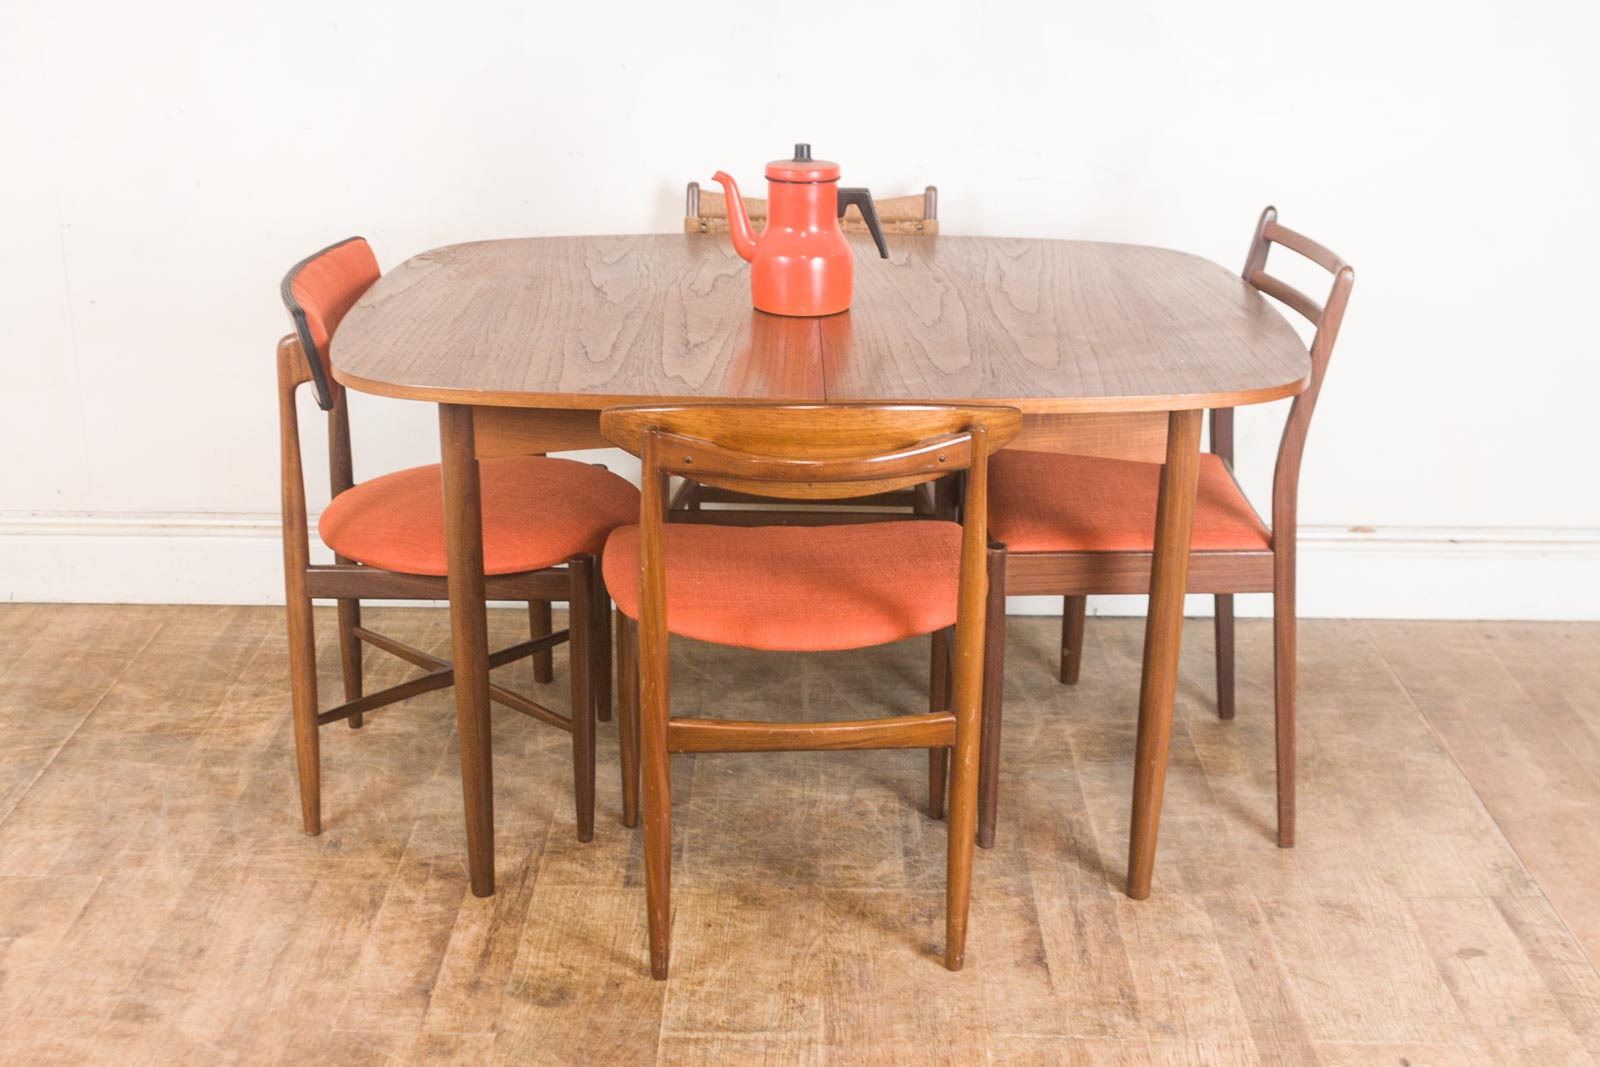 Vintage Retro G Plan Teak Oval Dining Table and 4 Mixed G  : hV040613 1 from www.ebay.co.uk size 1600 x 1067 jpeg 187kB